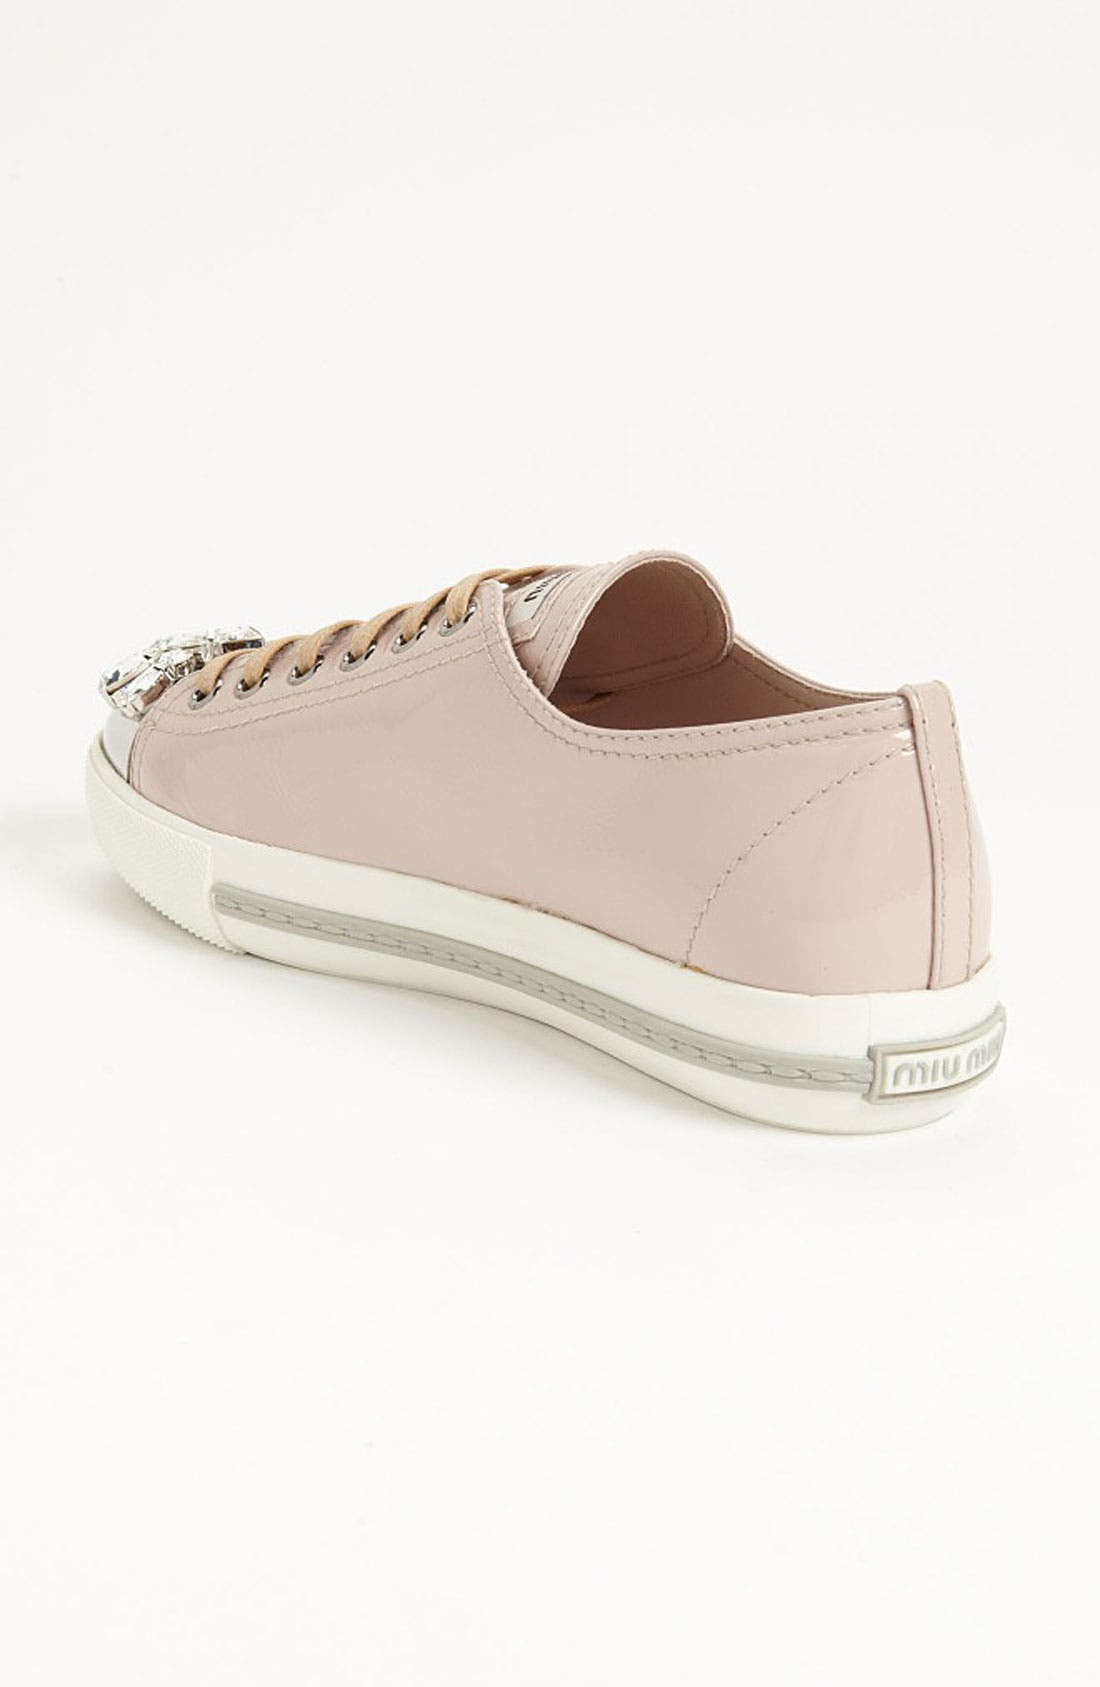 Alternate Image 2  - Miu Miu Crystal Cap Toe Sneaker